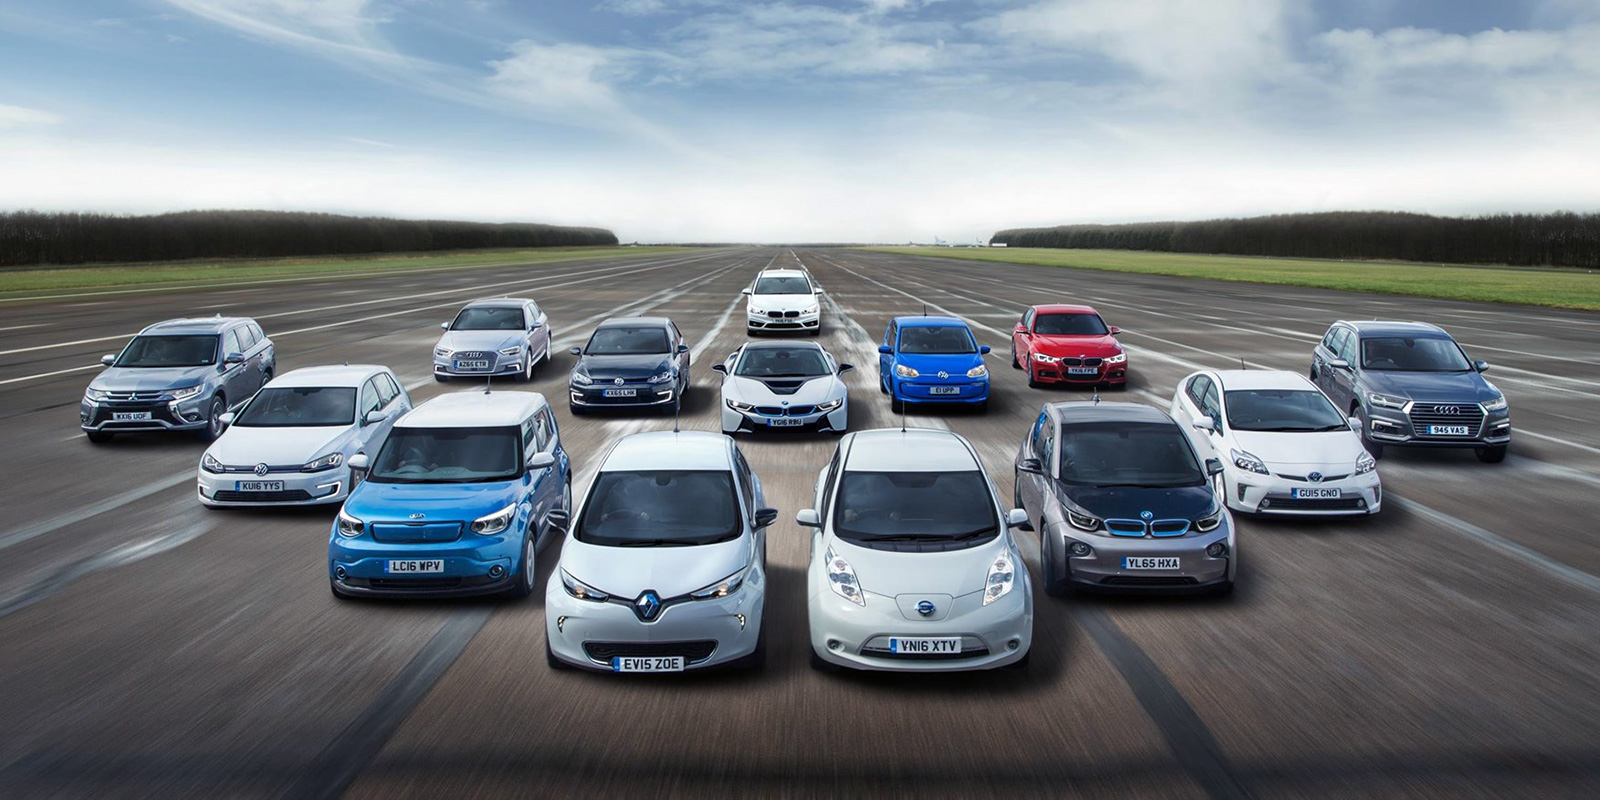 Report: At current rate of EV deployment, automakers not expected to meet EU CO2 targets - Electrek